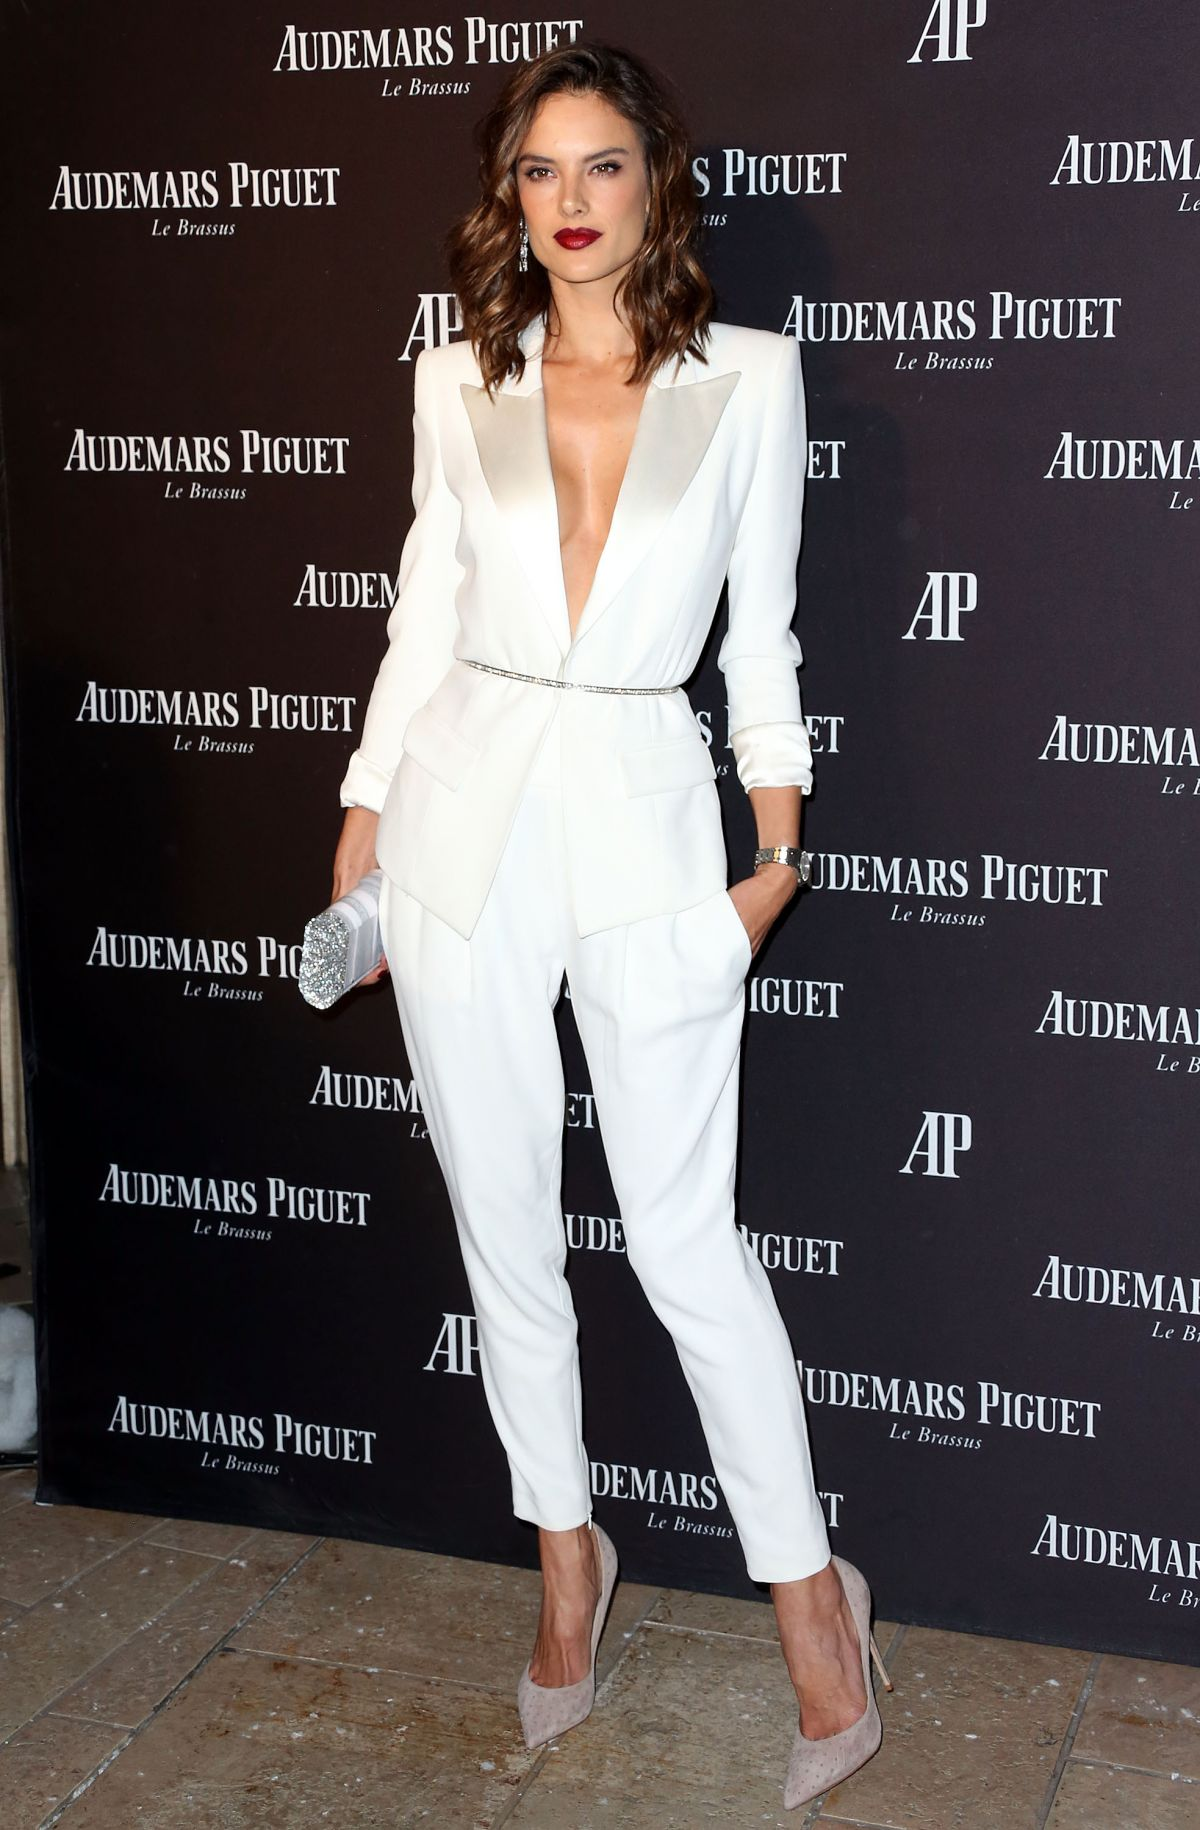 alessandra-ambrosio-at-audemars-piguet-celebrates-grand-opening-of-rodeo-drive-boutique-in-los-angeles-12-09-2015_6